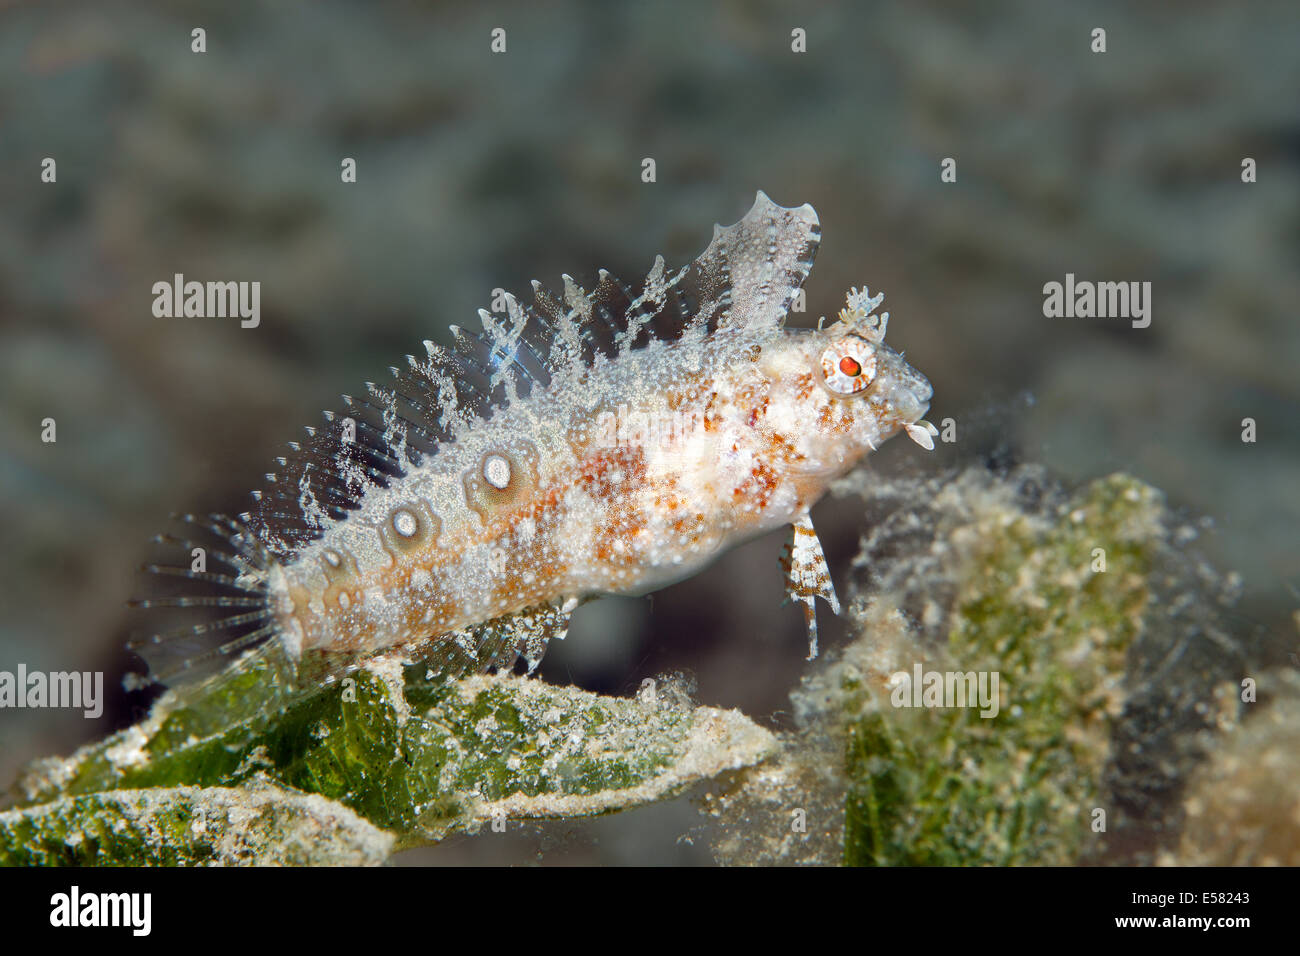 Blenny (Petroscirtes sp.) on seagrass meadow, Red Sea, Egypt - Stock Image